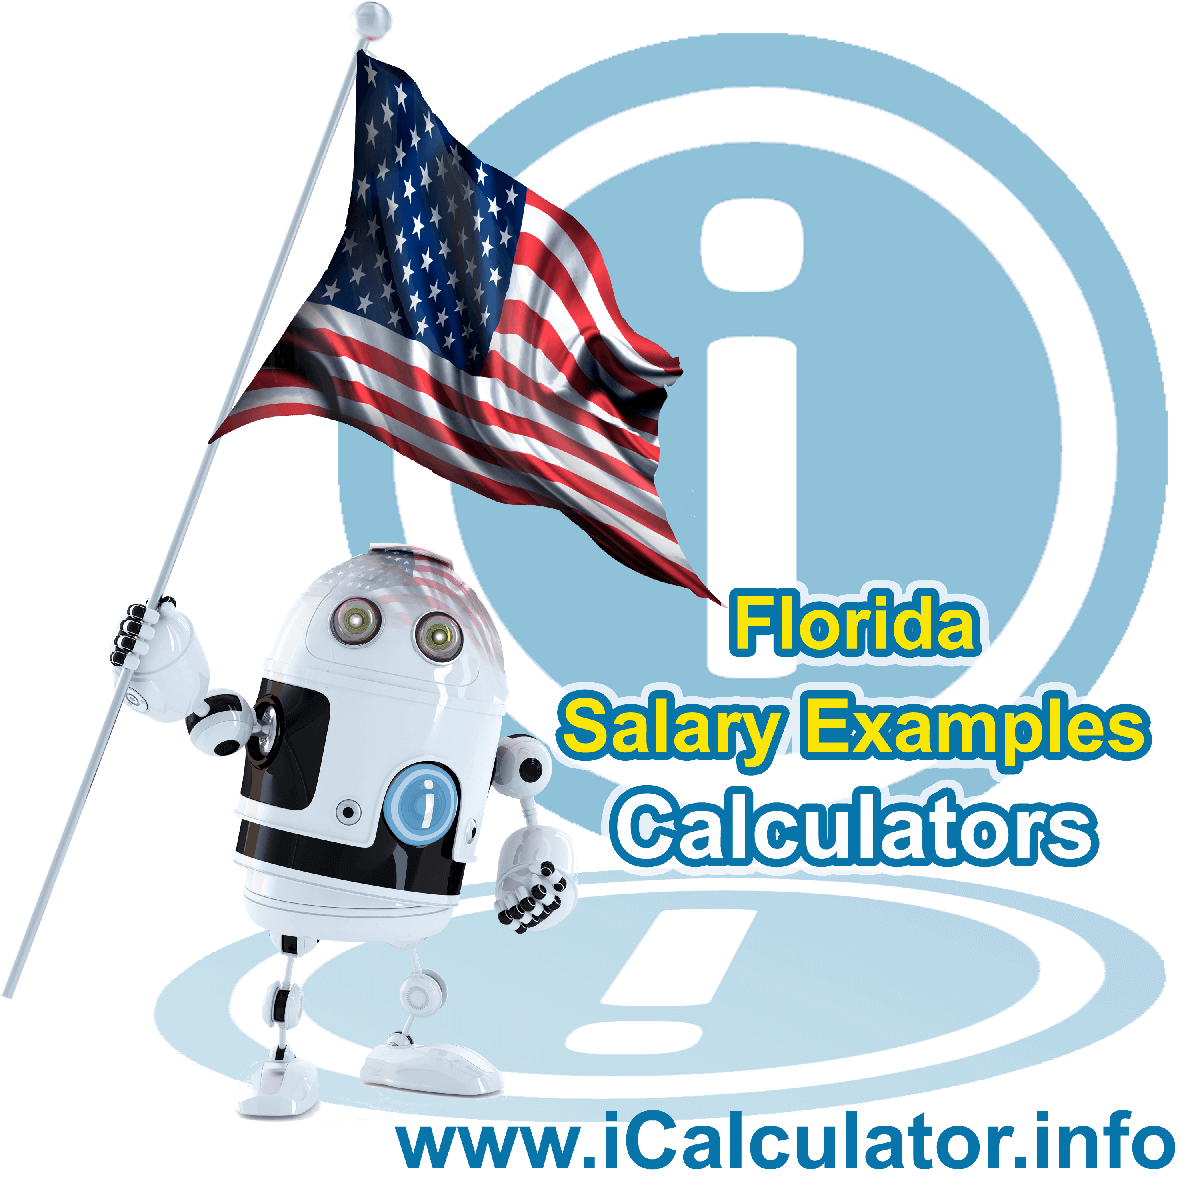 Florida Salary Example for $200,000.00 in 2021 | iCalculator™ | $200,000.00 salary example for employee and employer paying Florida State tincome taxes. Detailed salary after tax calculation including Florida State Tax, Federal State Tax, Medicare Deductions, Social Security, Capital Gains and other income tax and salary deductions complete with supporting Florida state tax tables